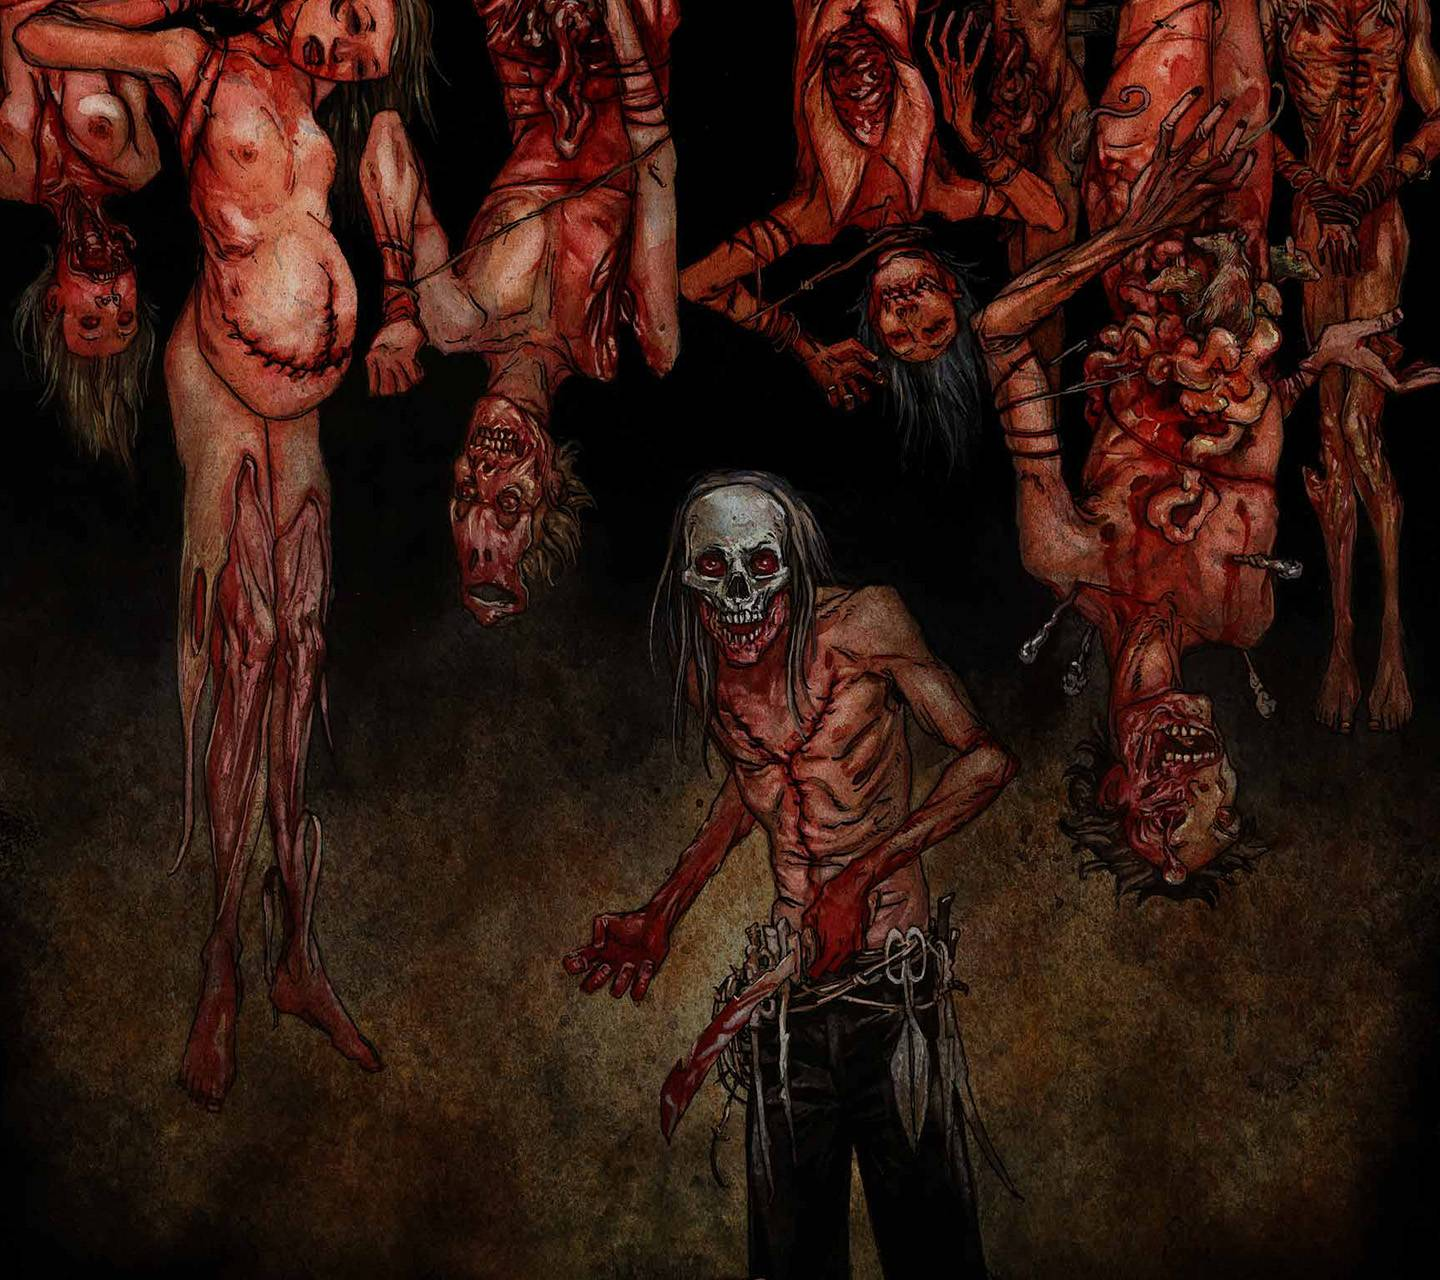 Cannibal Corpse Wallpaper By Kolano68 D0 Free On Zedge